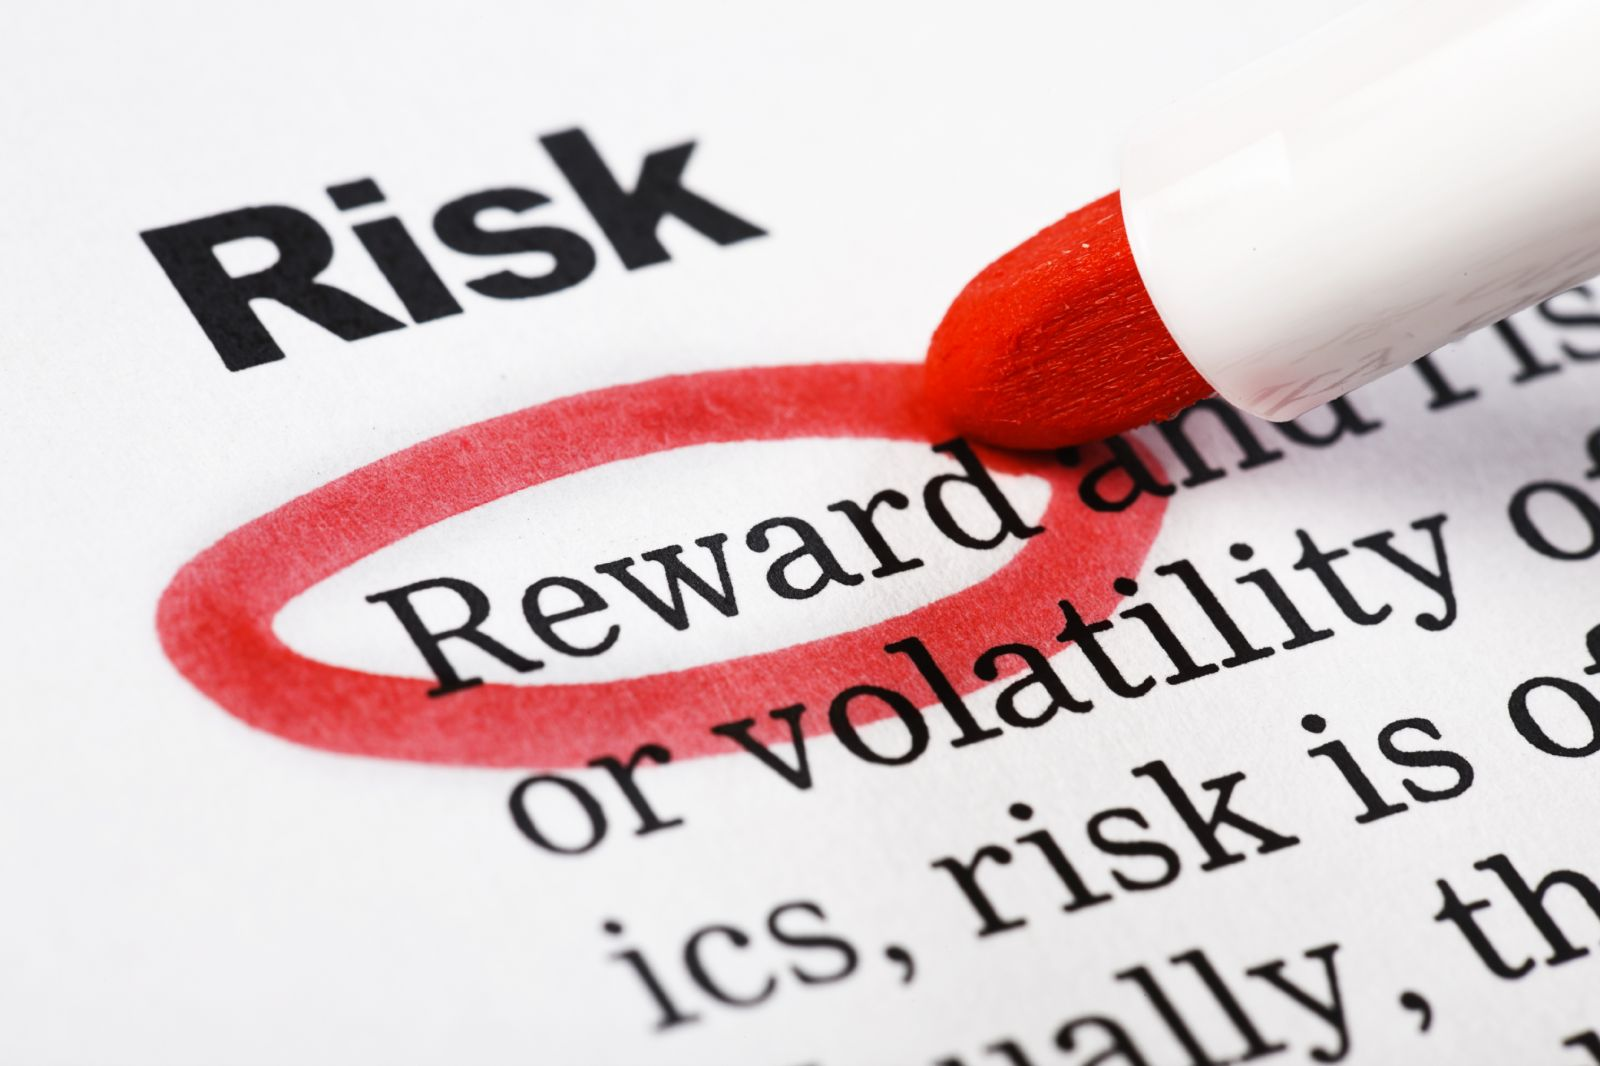 investment risk and reward ives training group